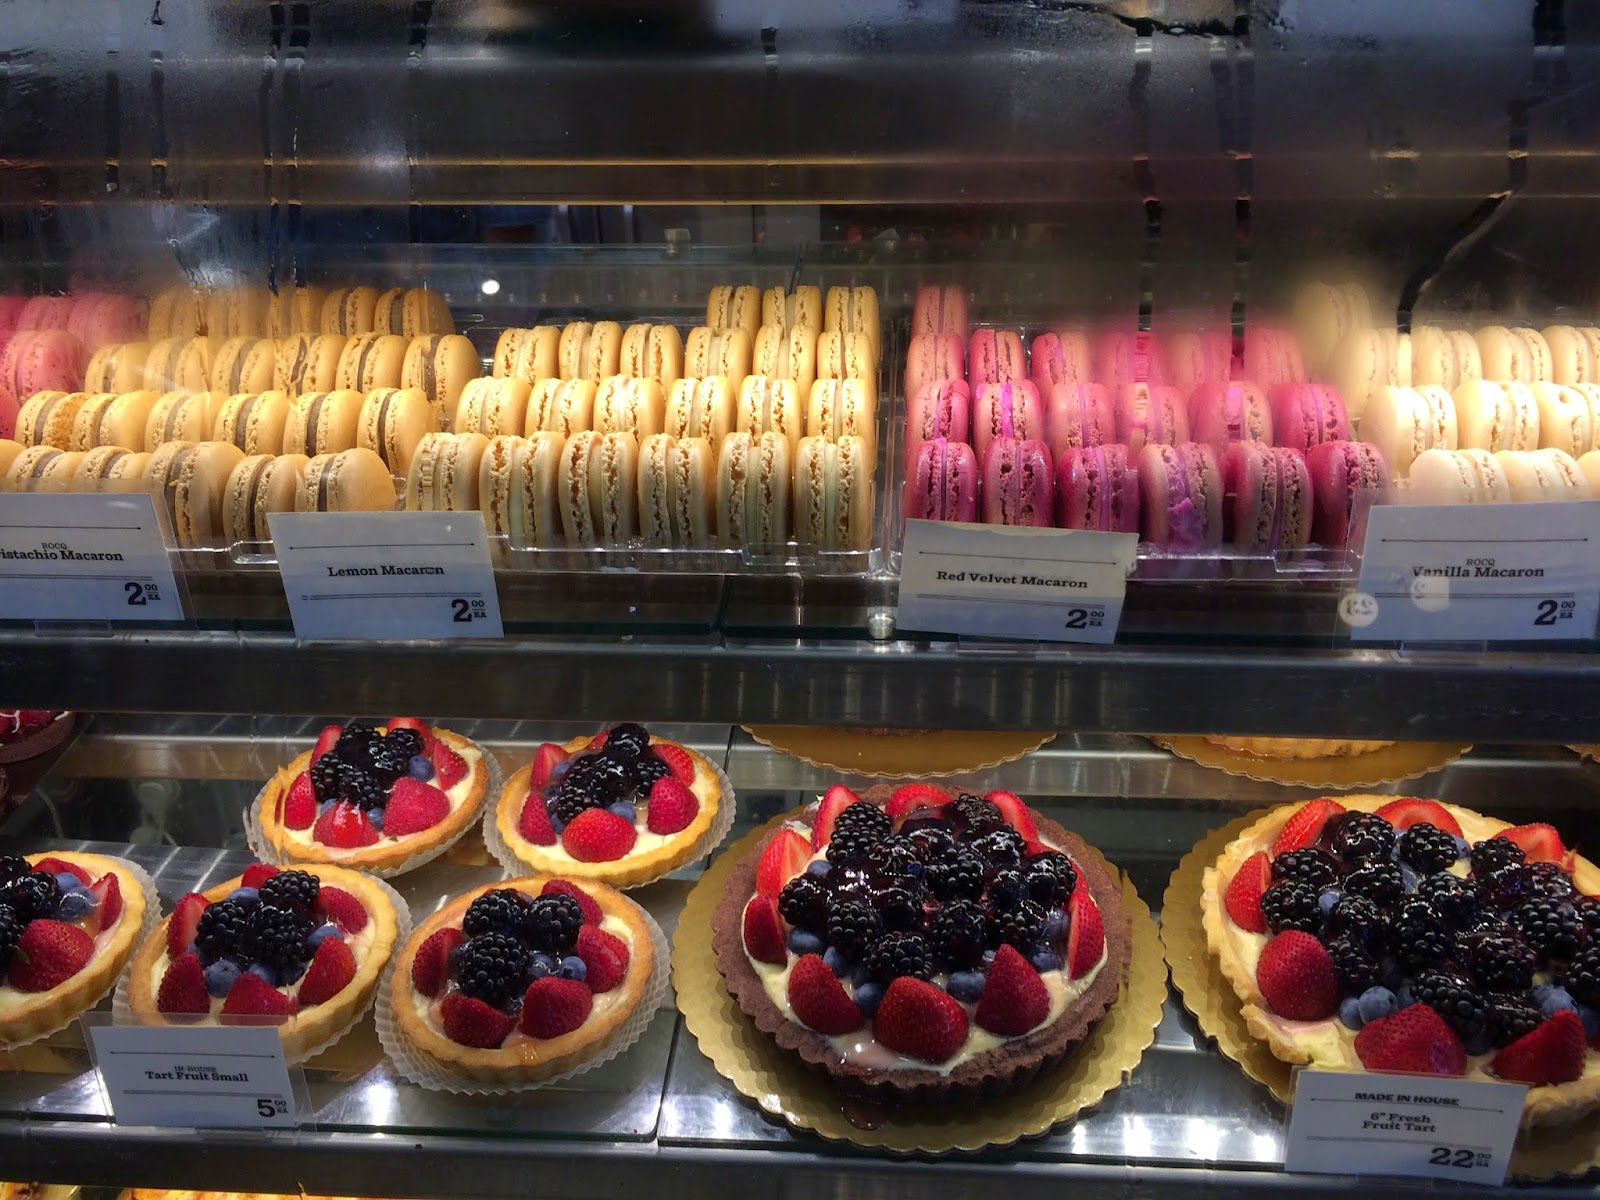 Whole Foods Pasadena Bakery